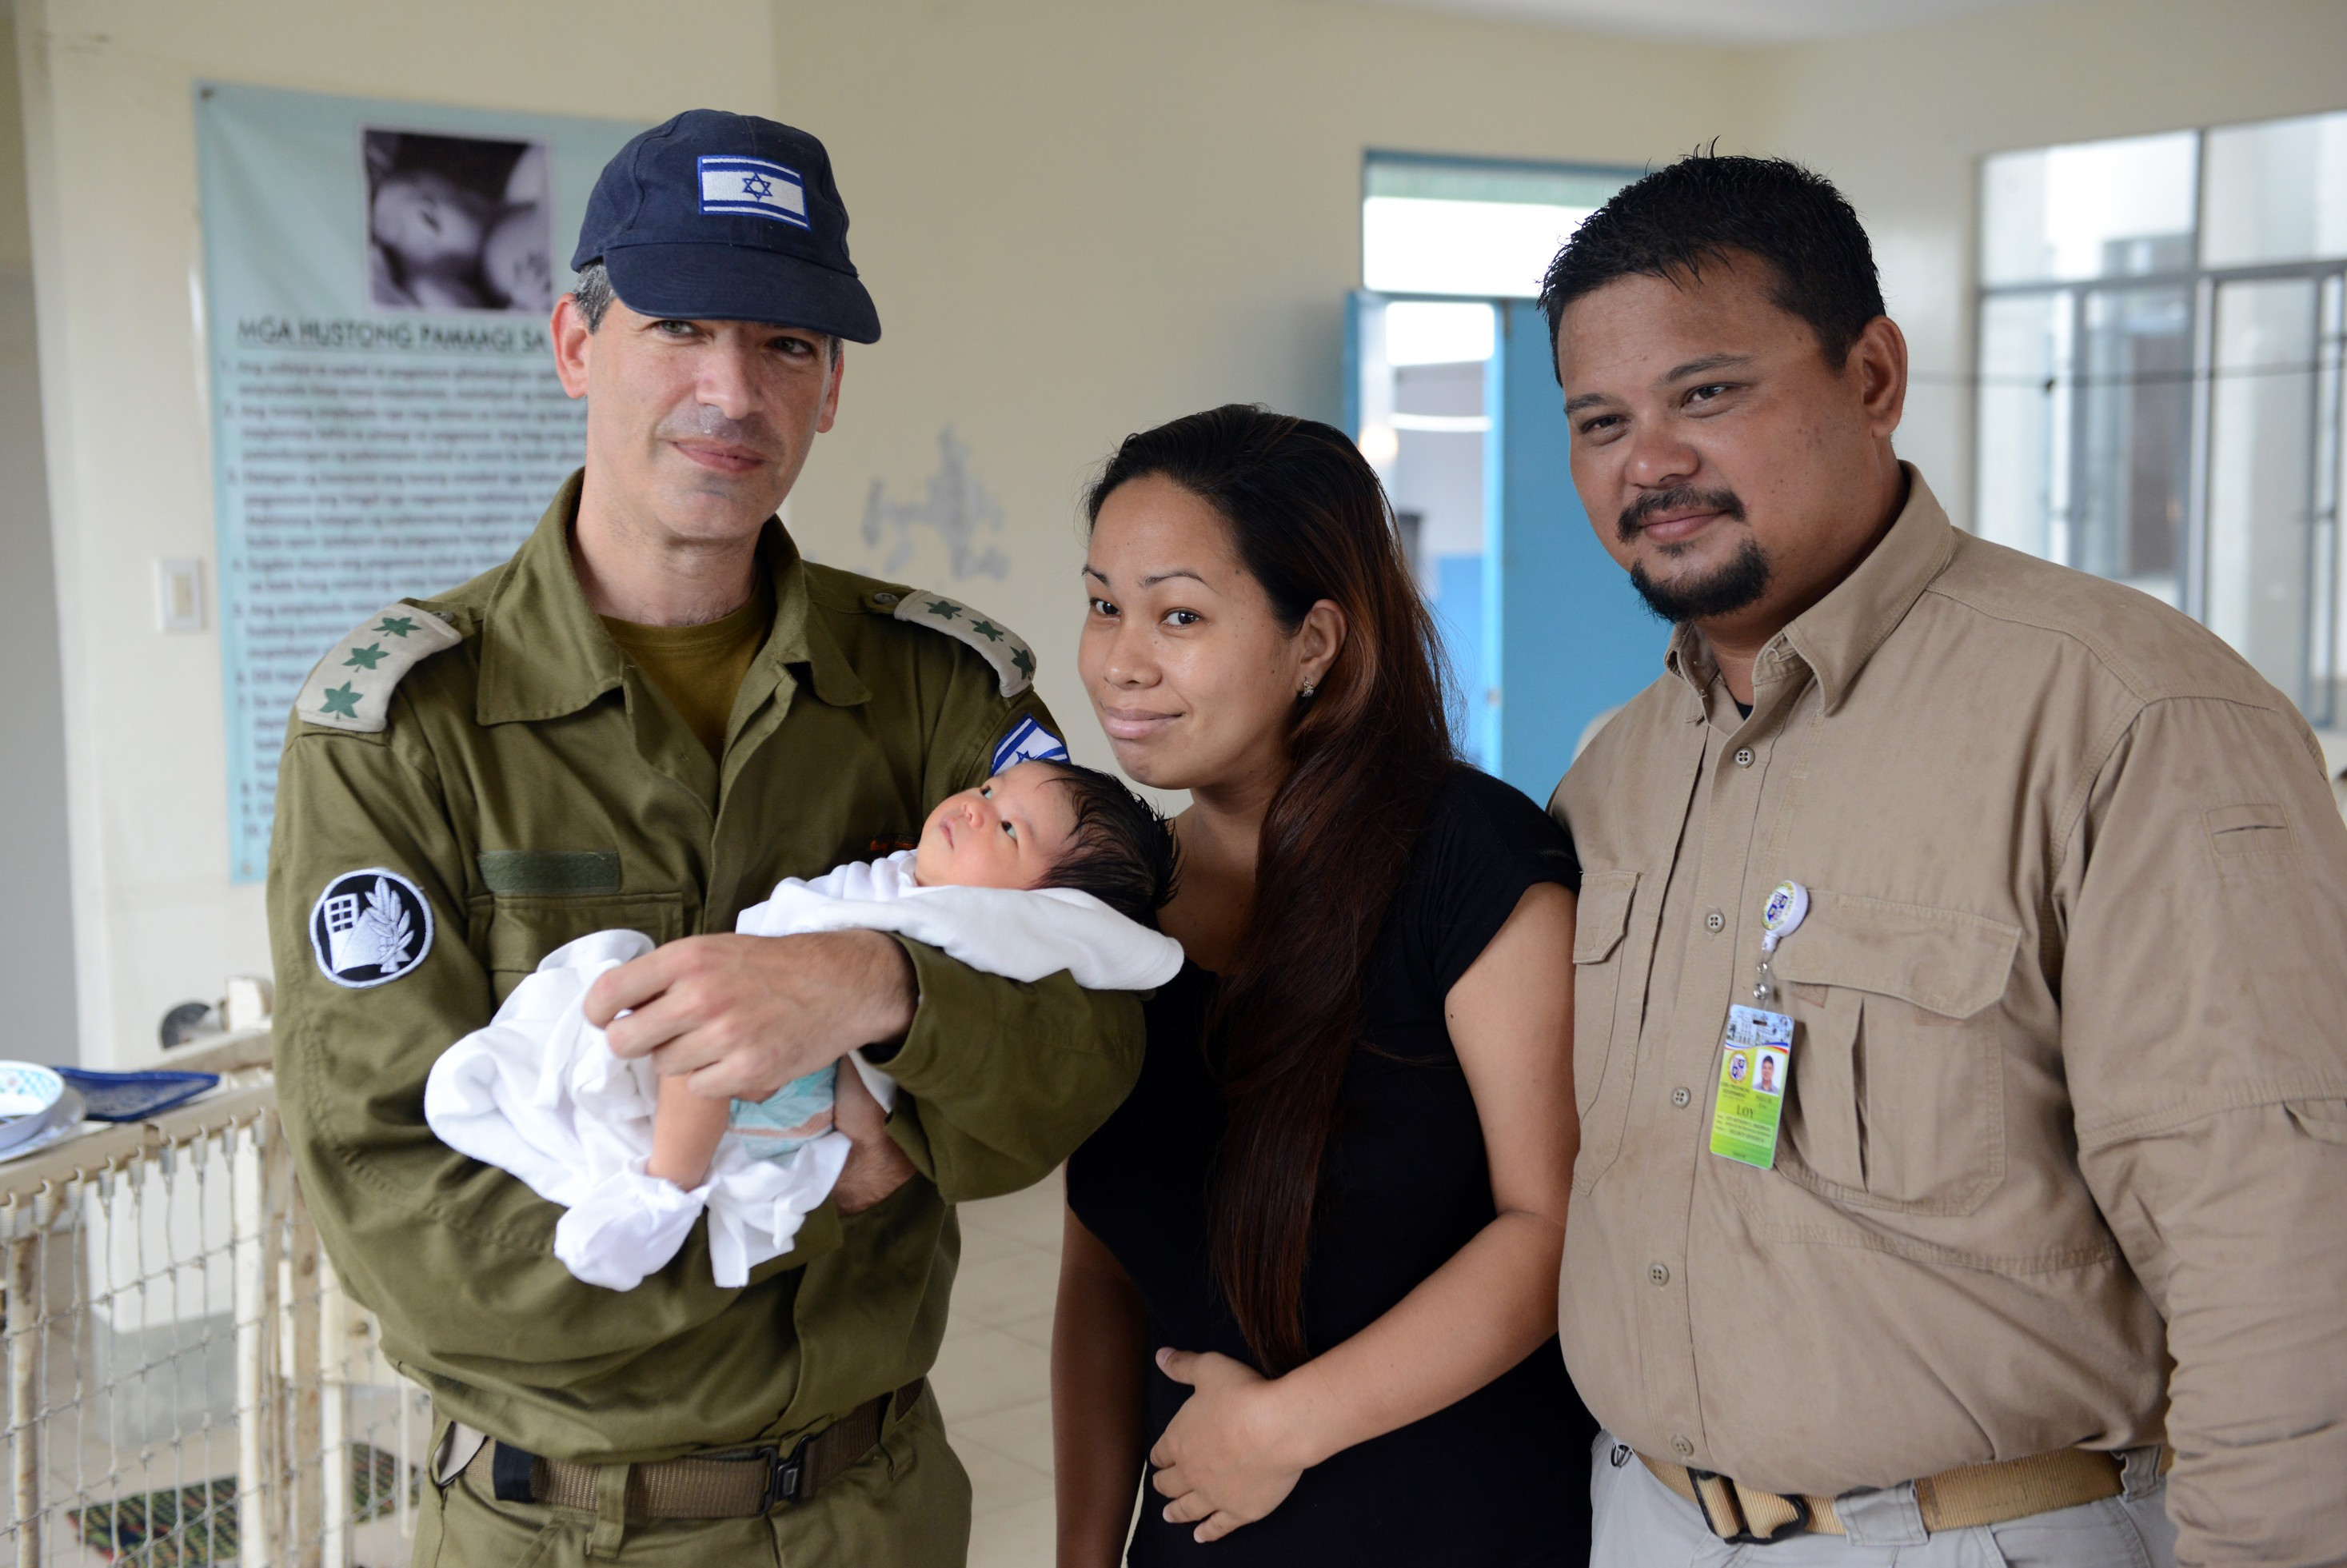 Louis, the head of security in Cebu, named his daughter Shai, after IDF Military Attaché to the Philippines Col. Shai Brovender. (IDF Spokesperson's Unit)